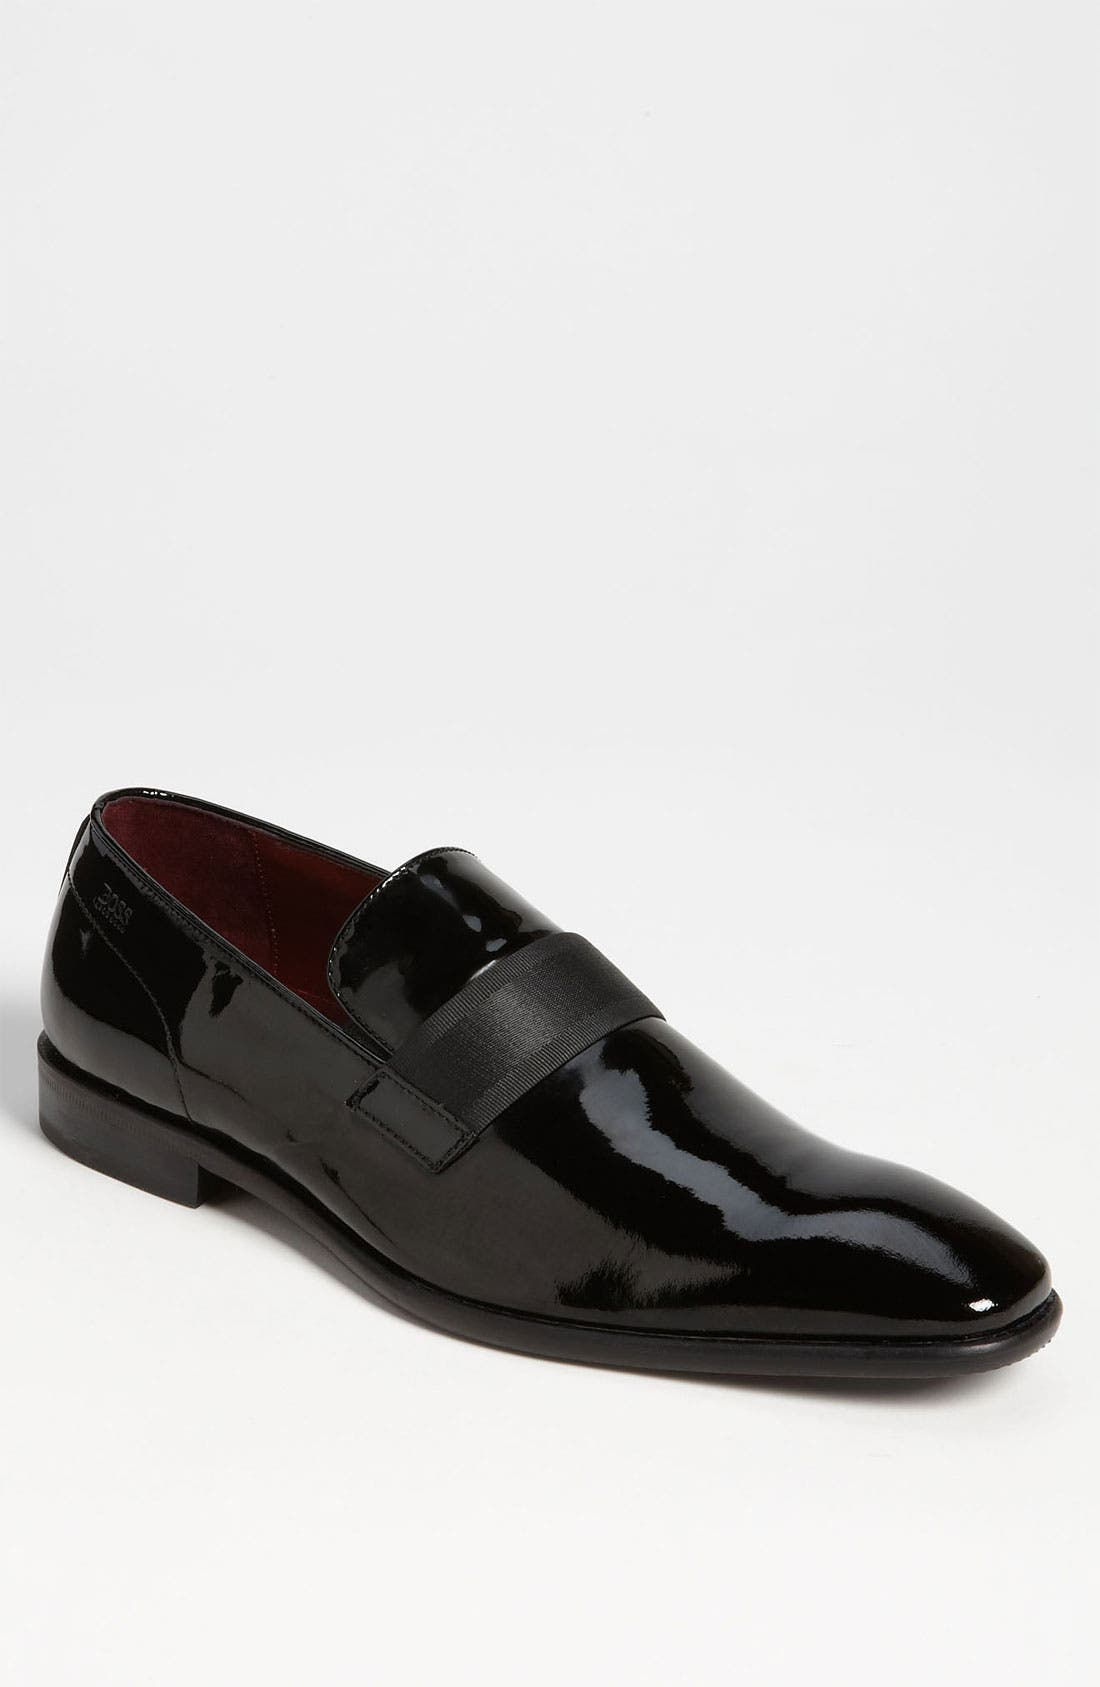 Main Image - BOSS 'Mellion' Patent Loafer (Men)